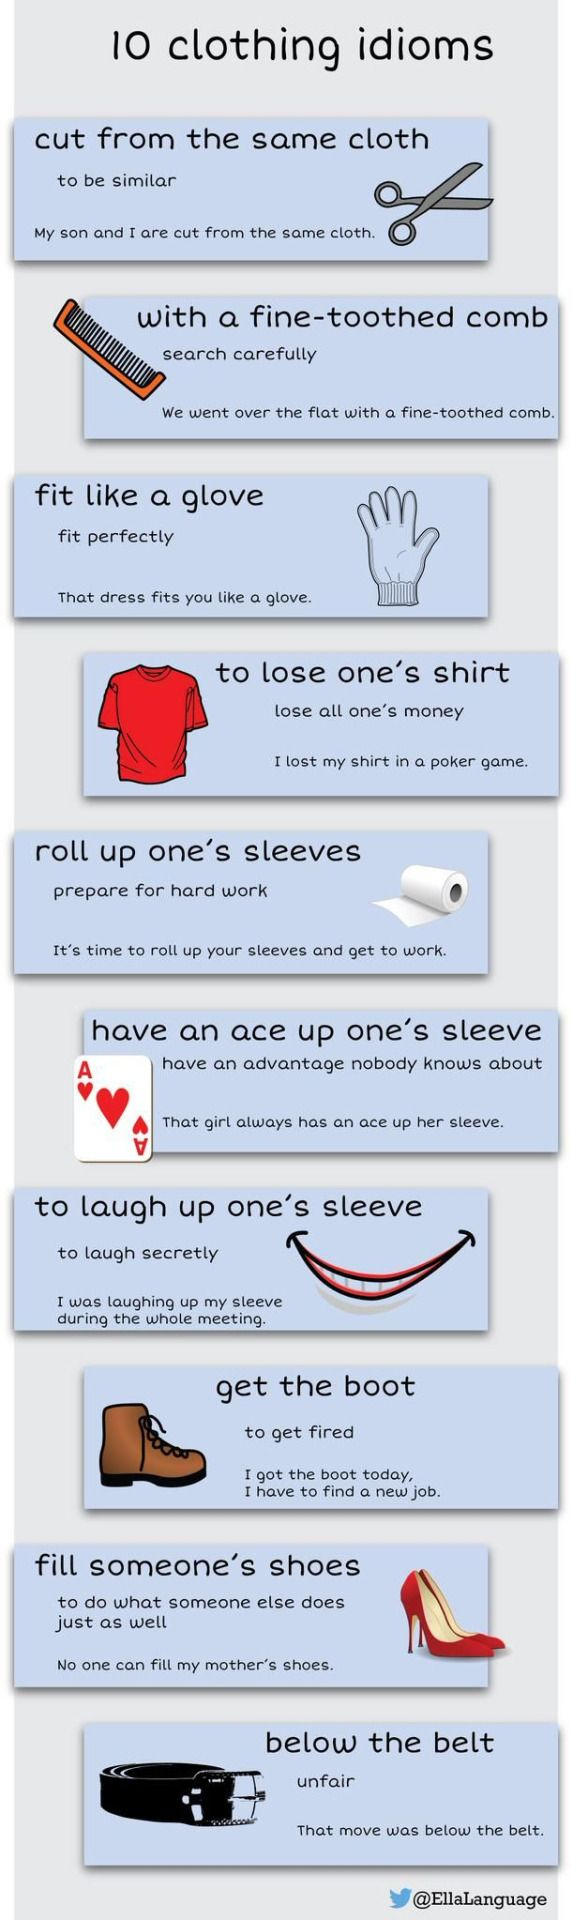 10 clothing idioms #learnenglish